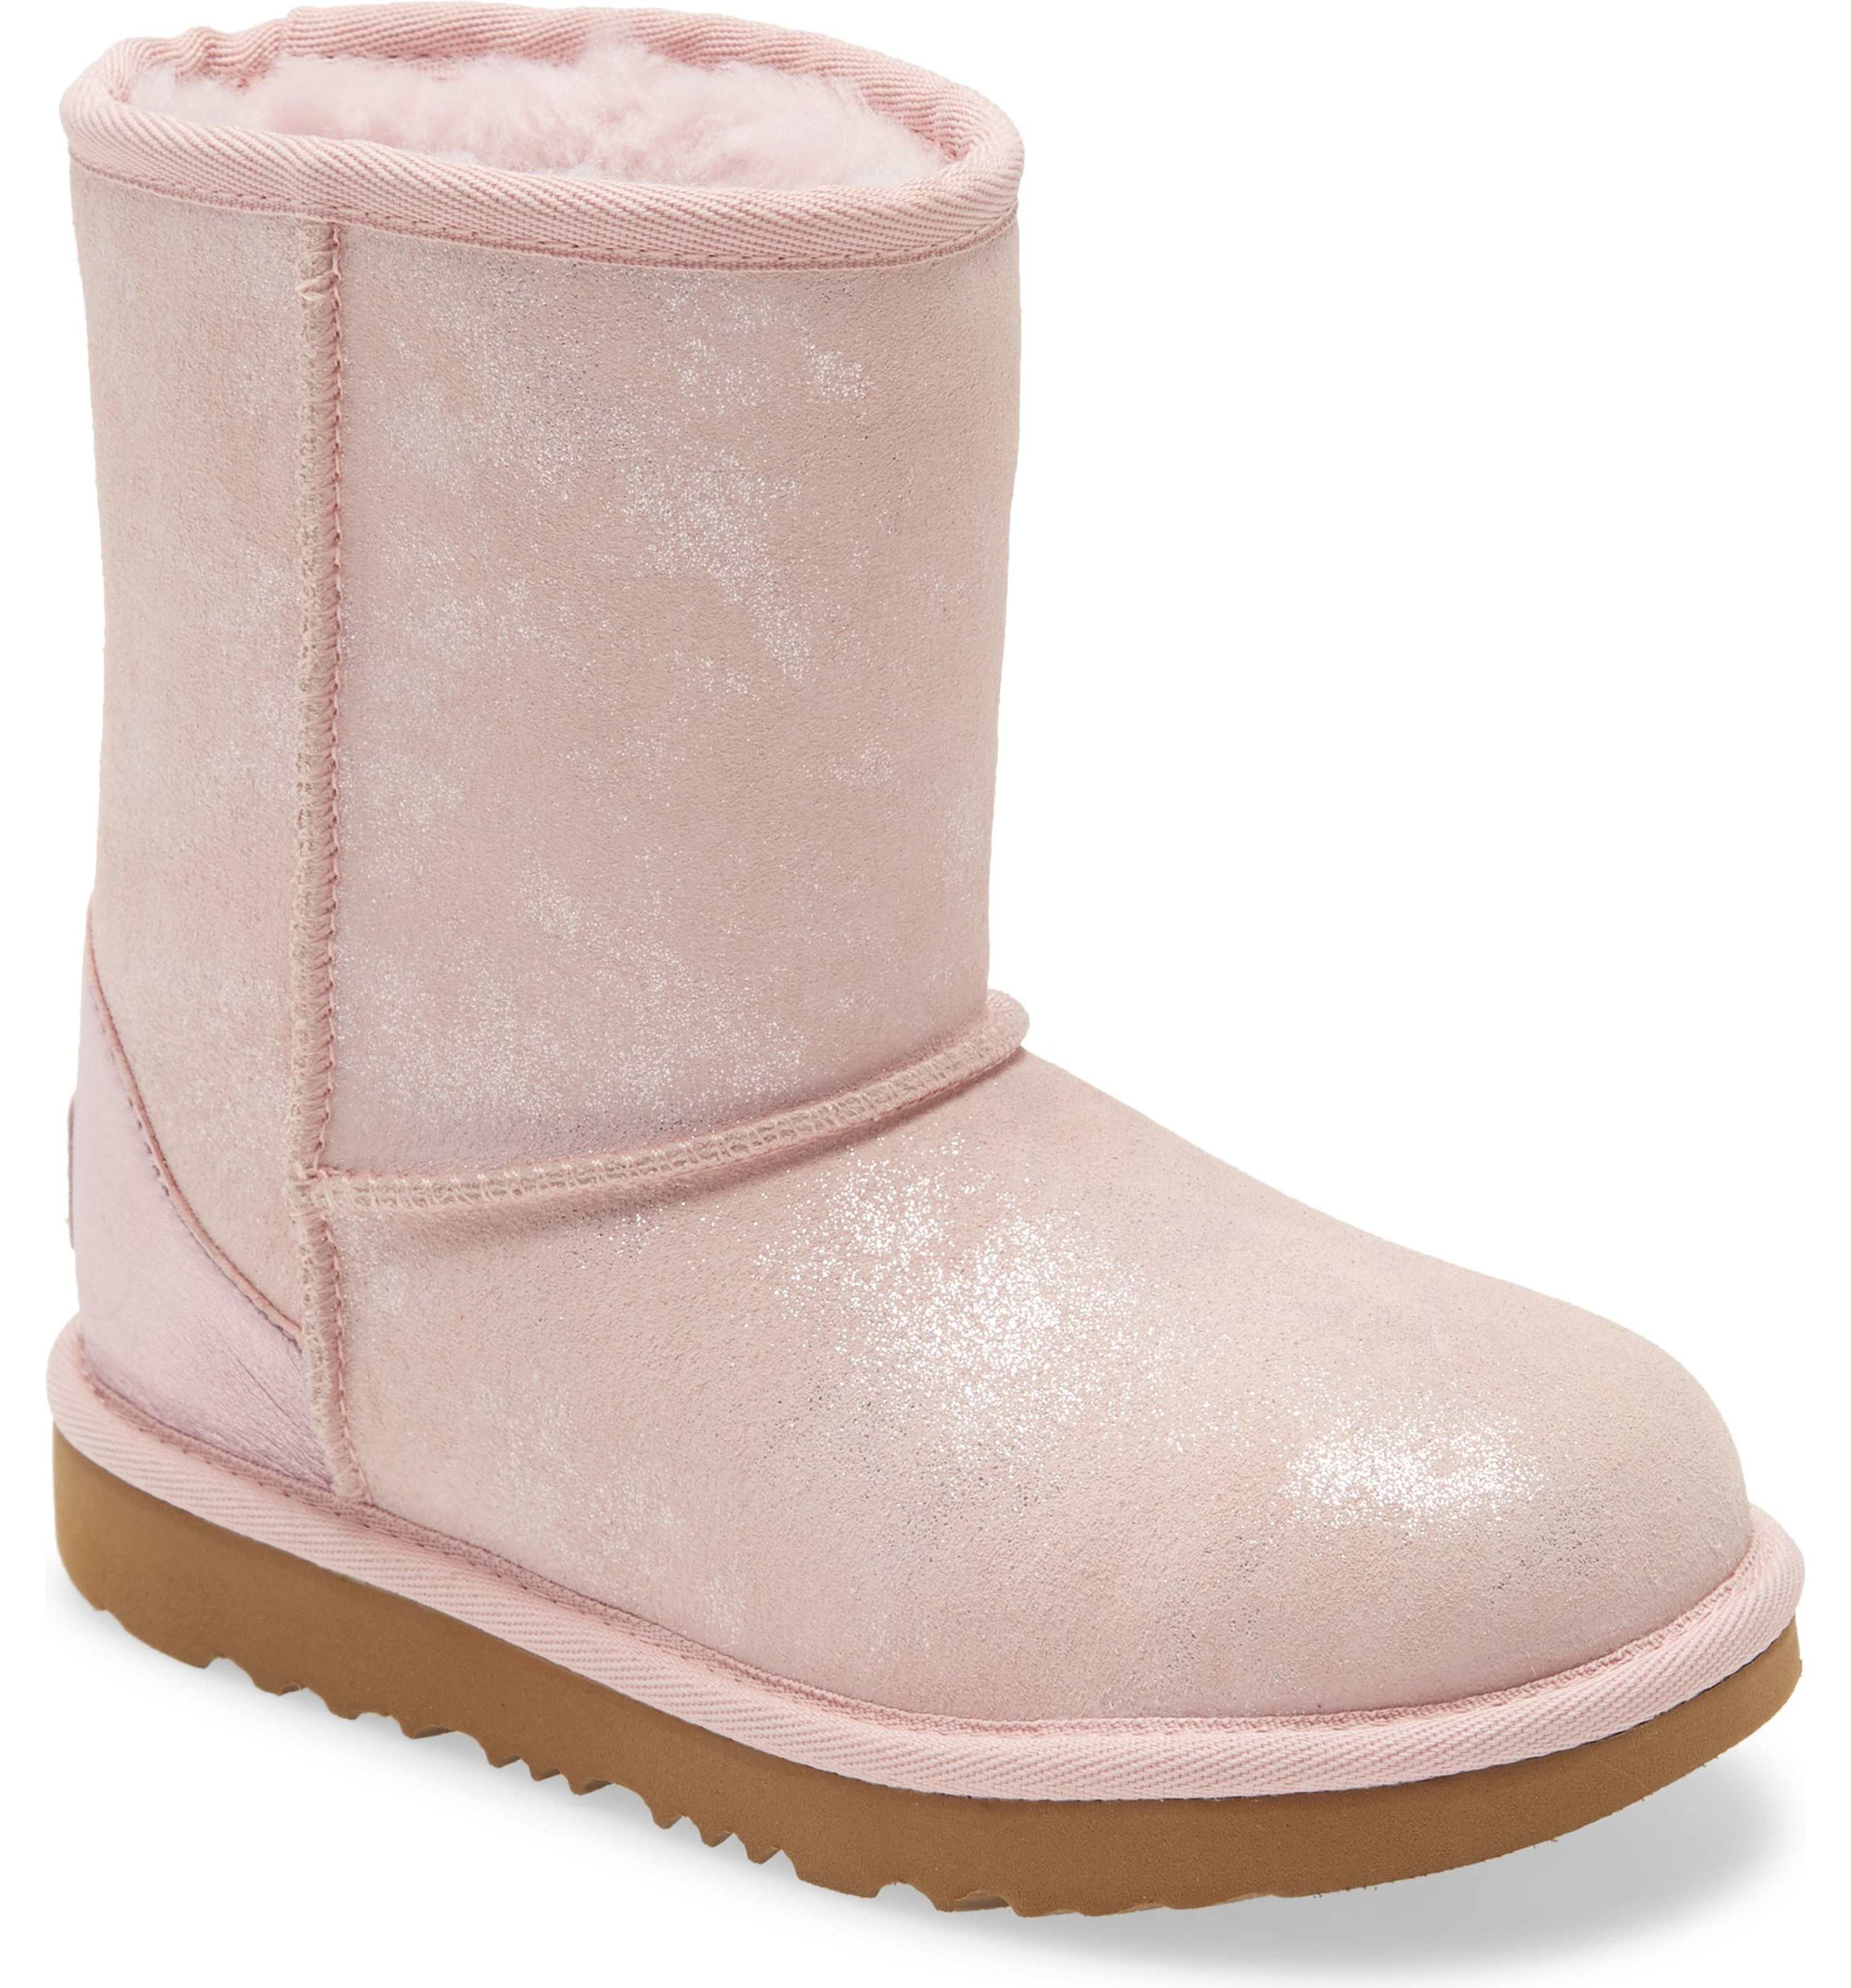 The pink uggs